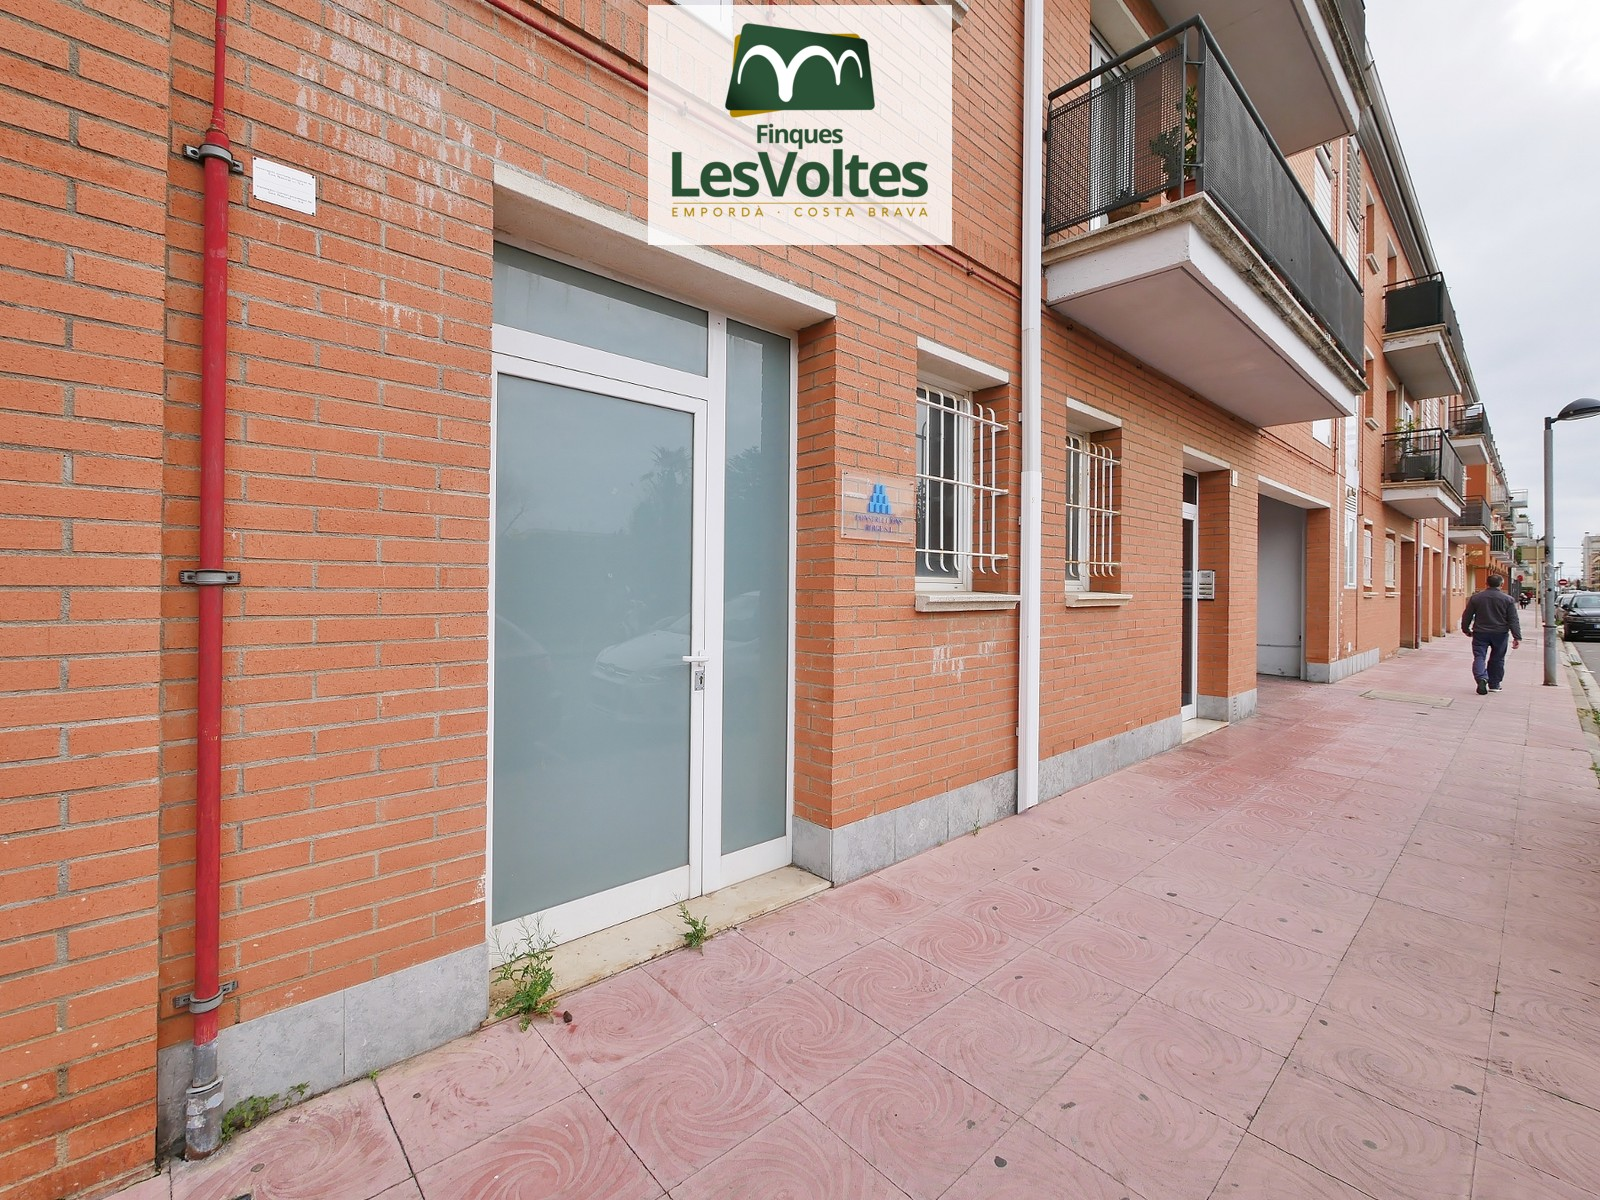 COMMERCIAL PREMISES OF 100M2 LOCATED IN THE CENTER OF PALAMÓS ENABLED AS AN OFFICE